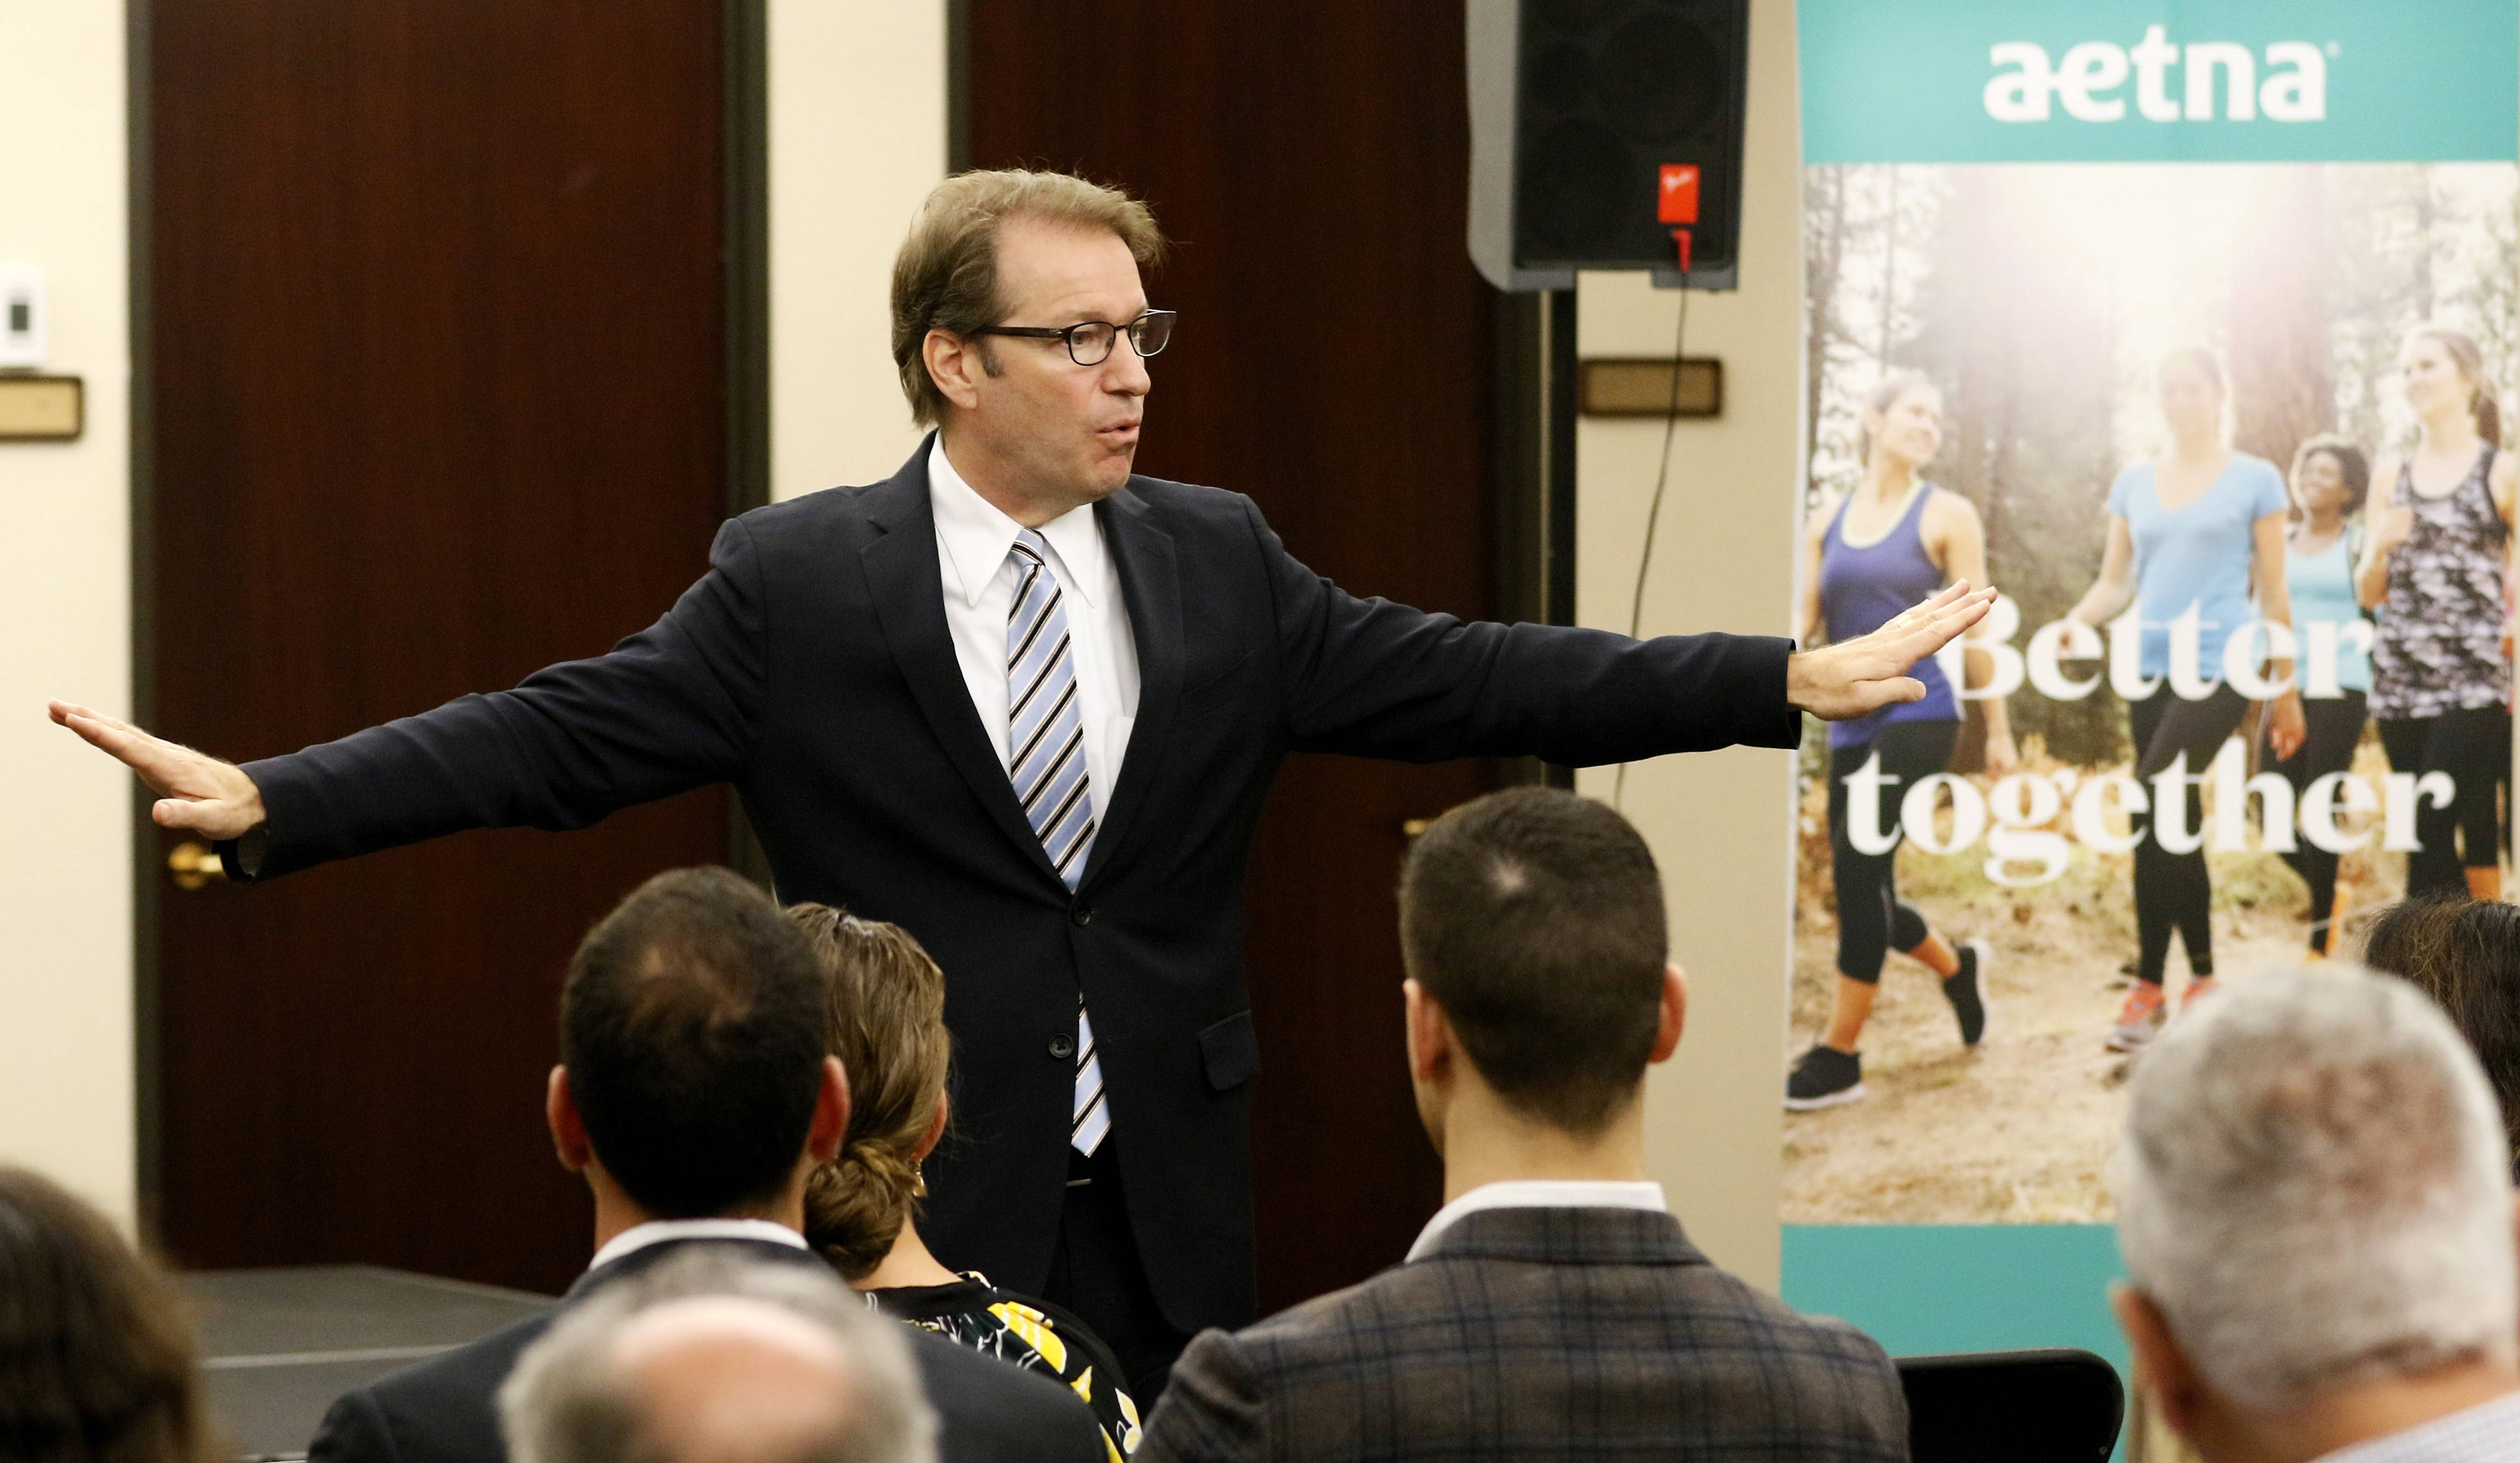 Peter Roskam tells Aetna employees he is asking questions of health industry leaders to try to remove unnecessary regulatory burdens and make progress on the nation's health care debate.